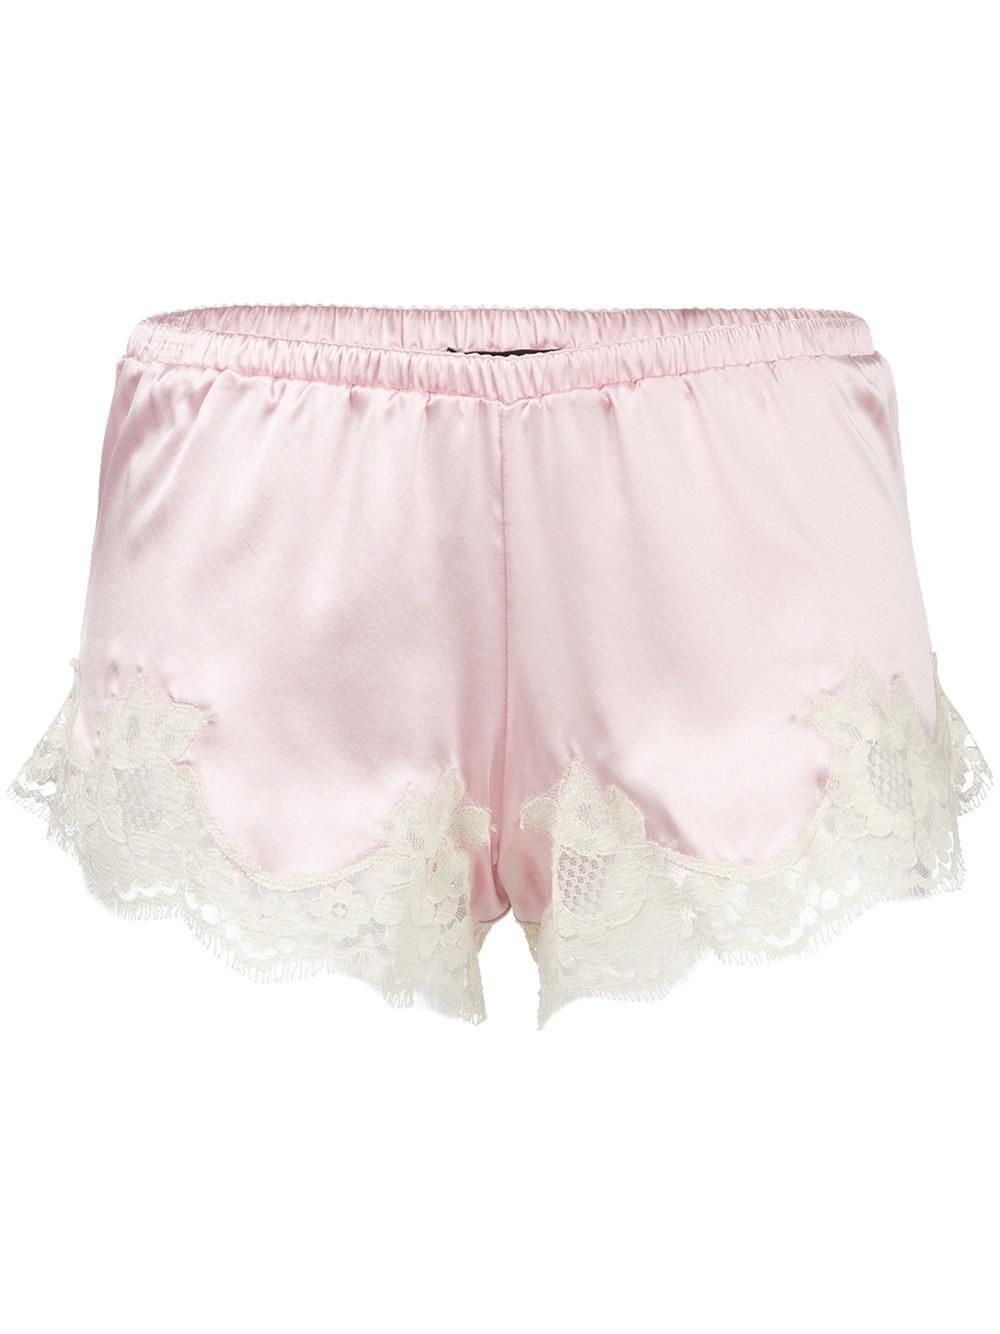 exclusive range famous designer brand attractive price Dolce & Gabbana lace trim French knickers Women Clothing ...